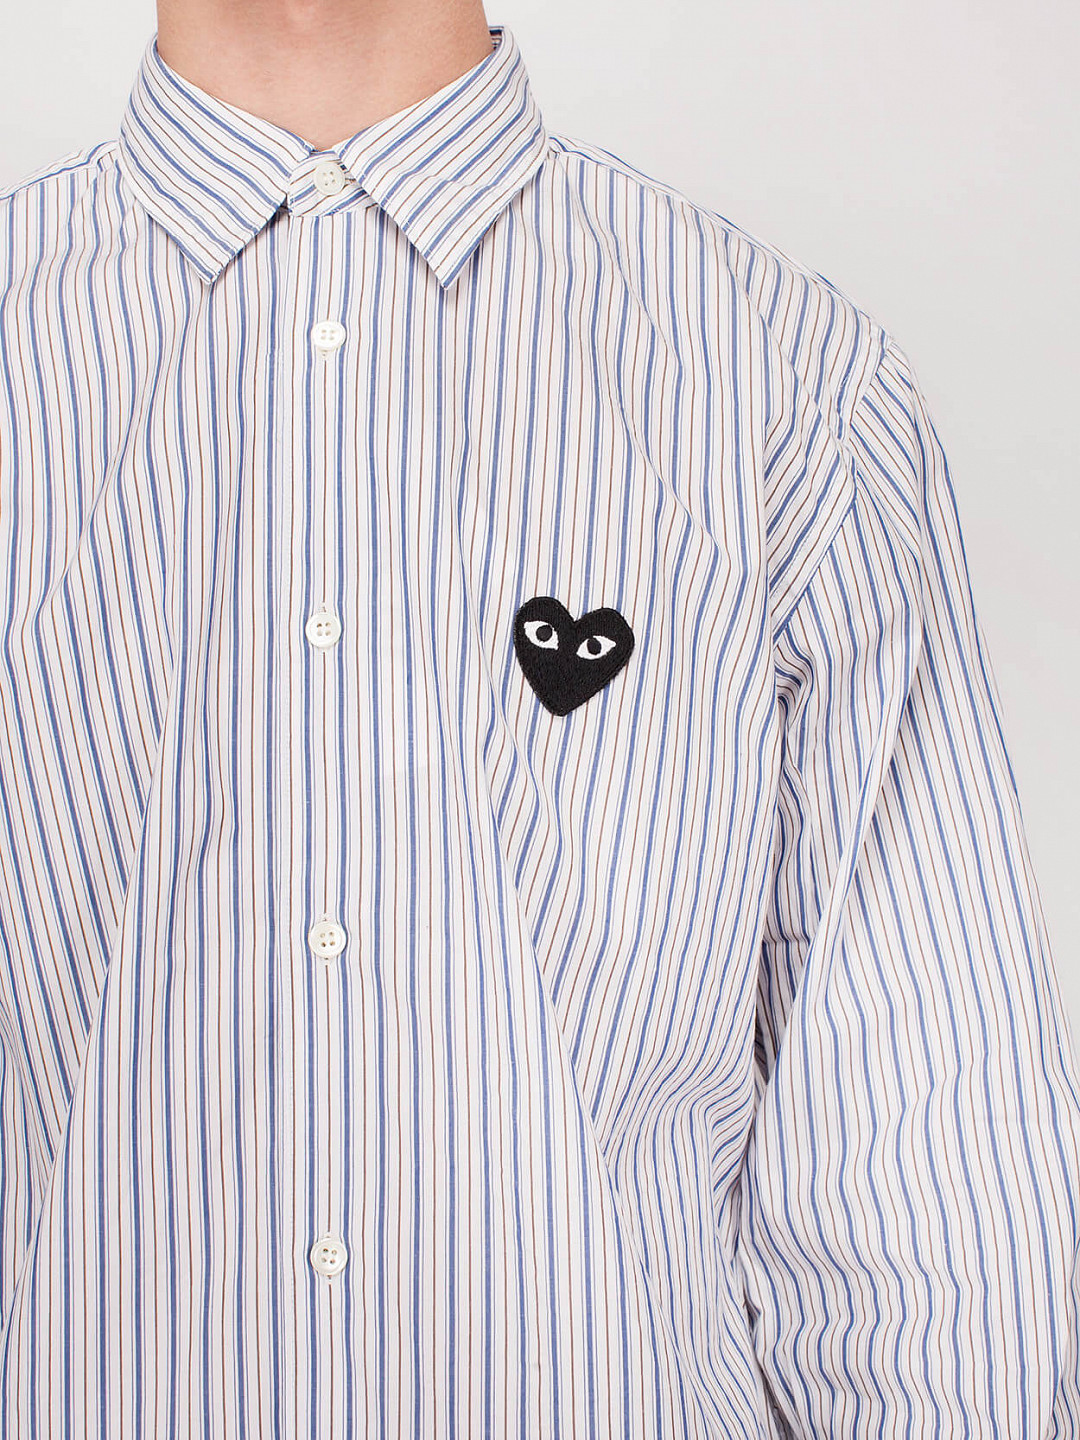 Shirt Stripe light blue